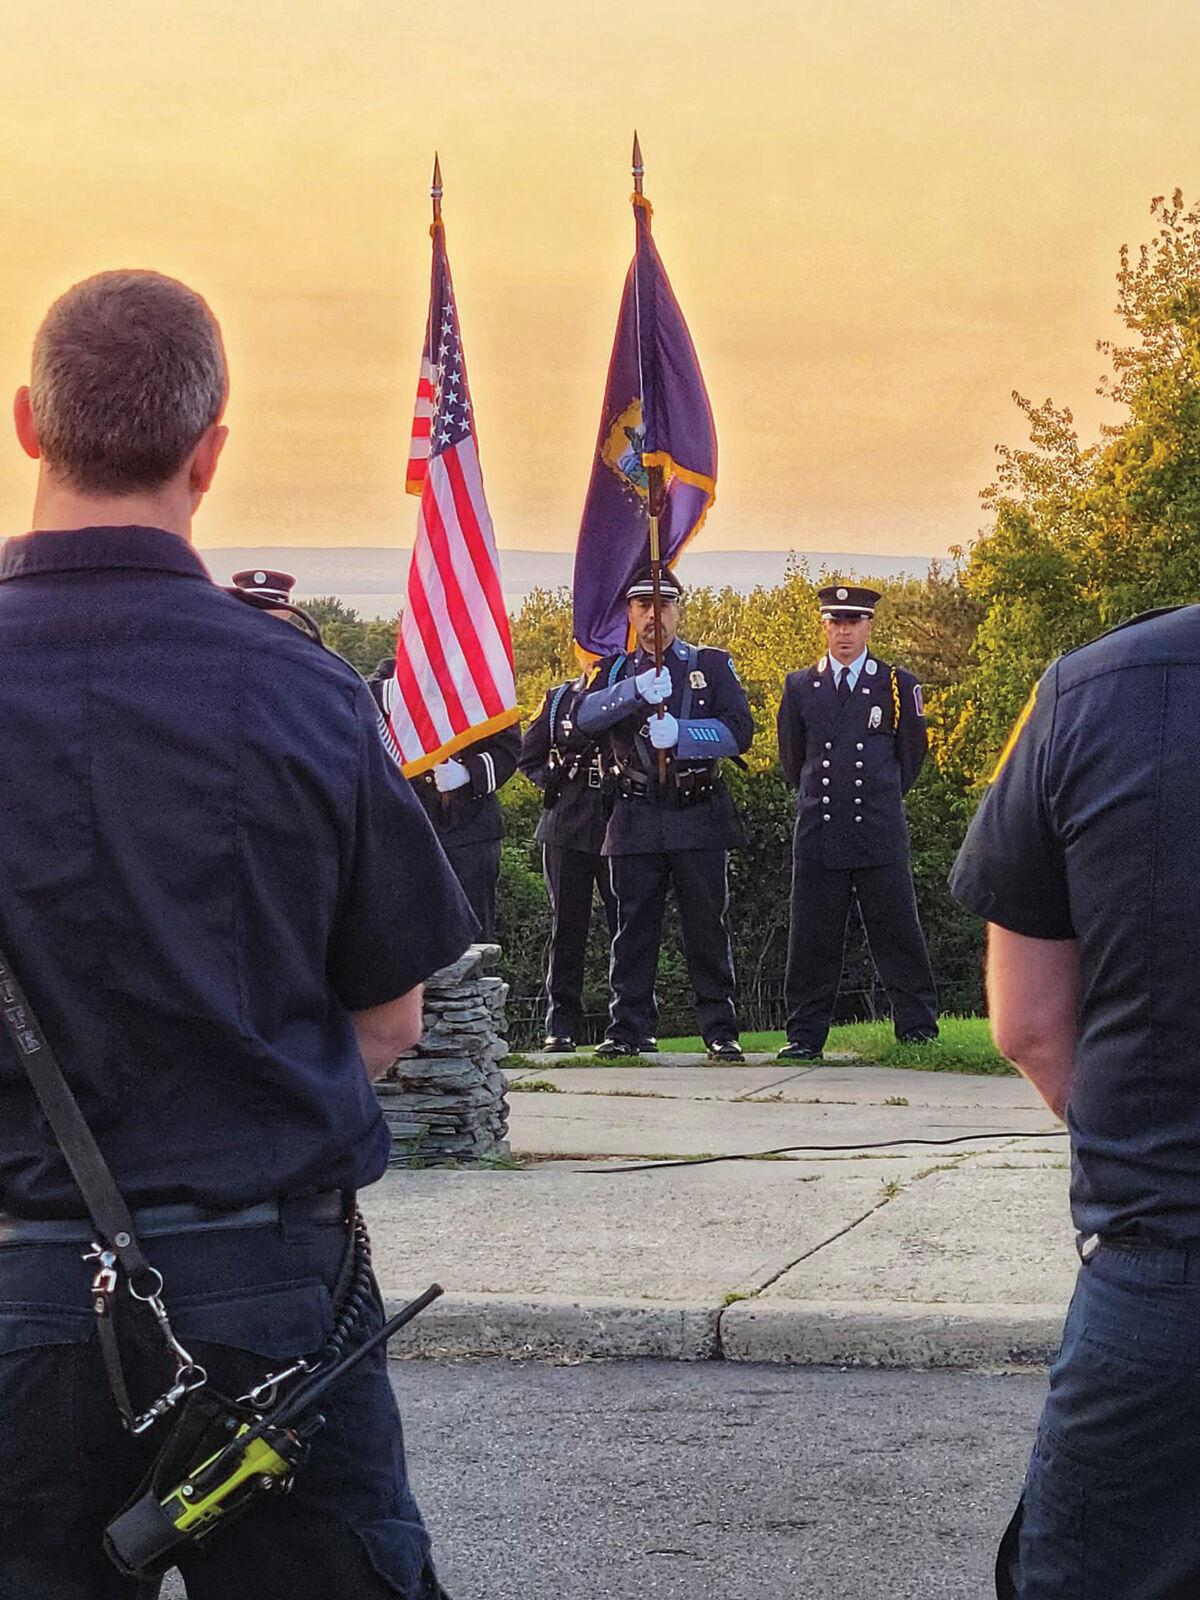 South Burlington public safety members remember the events of Sept. 11